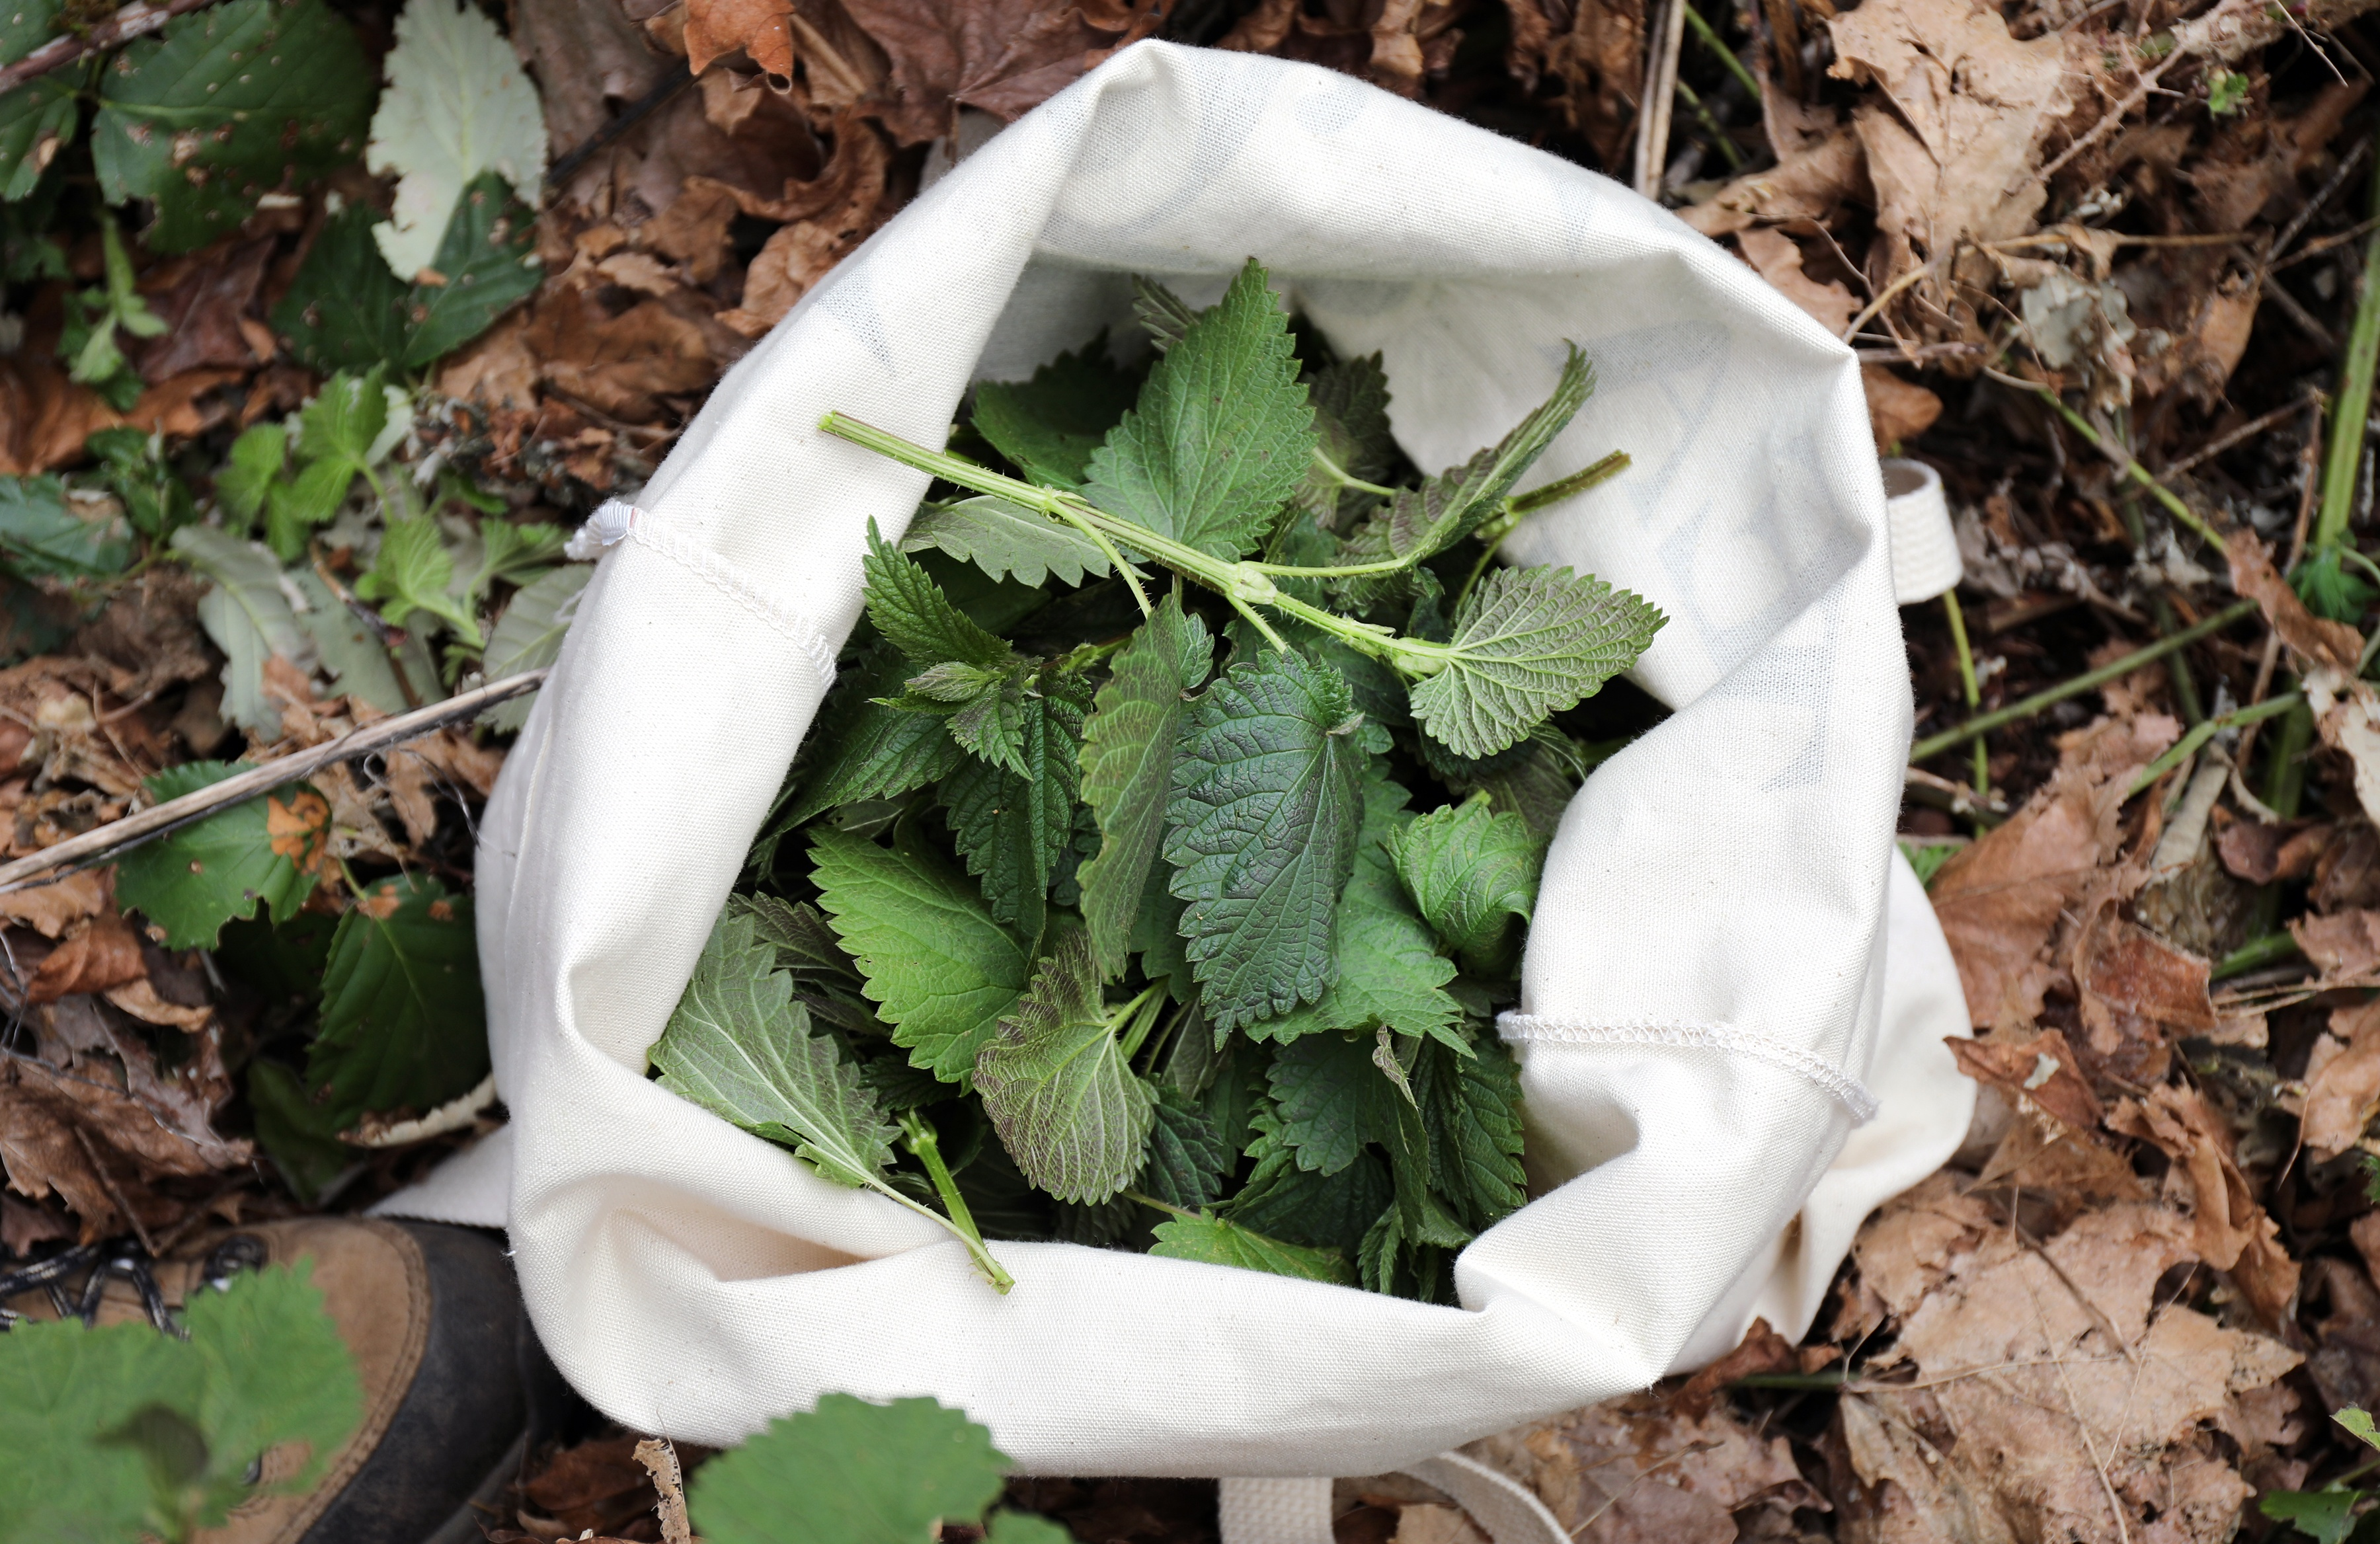 Canvas tote bag filled with nettle leaves sitting in forest ground